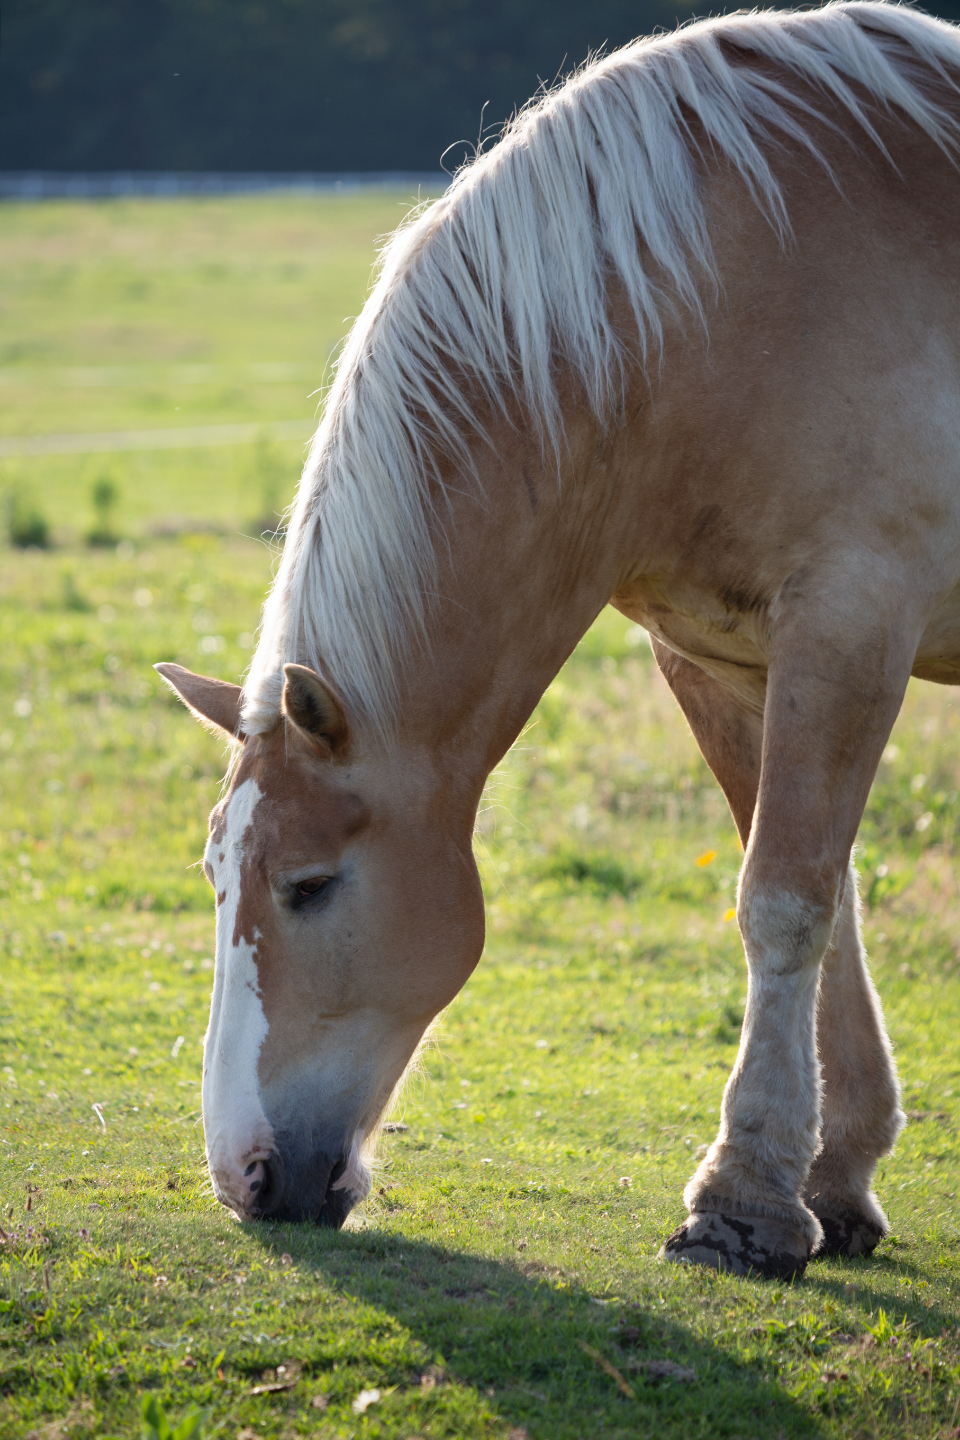 pasture grazing equine field sunshine equestrian ranch farm nature horse animal grass eyes nose mouth hoof legs